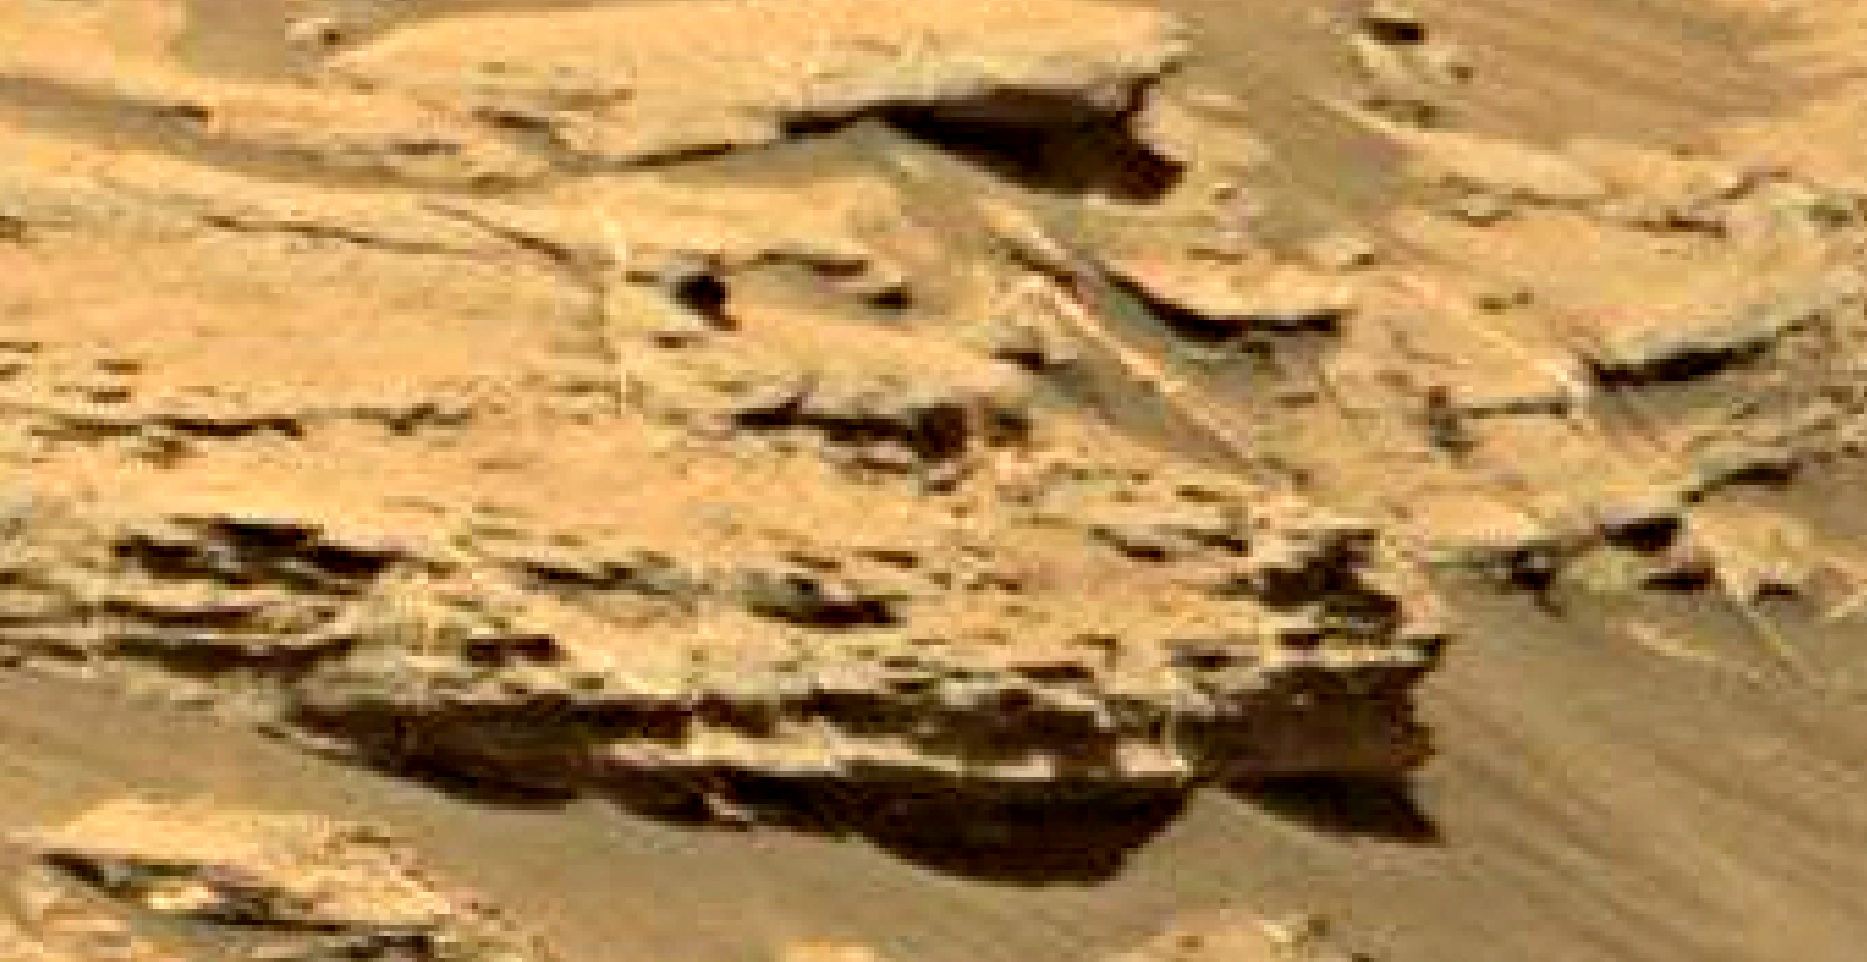 mars sol 1353 anomaly-artifacts 9e was life on mars